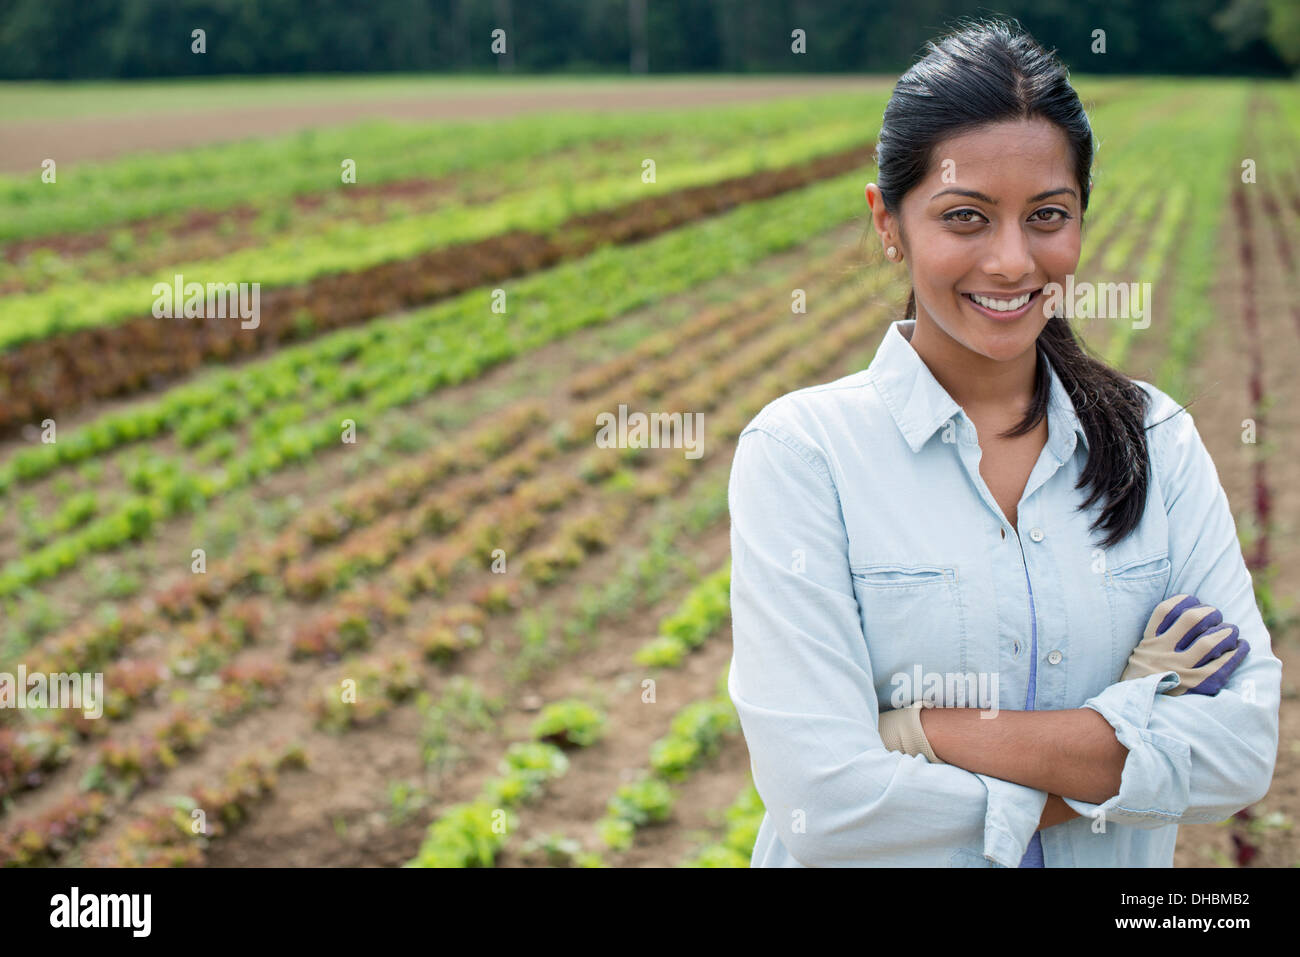 A woman standing in a farm field, with small salad plants growing in rows. - Stock Image